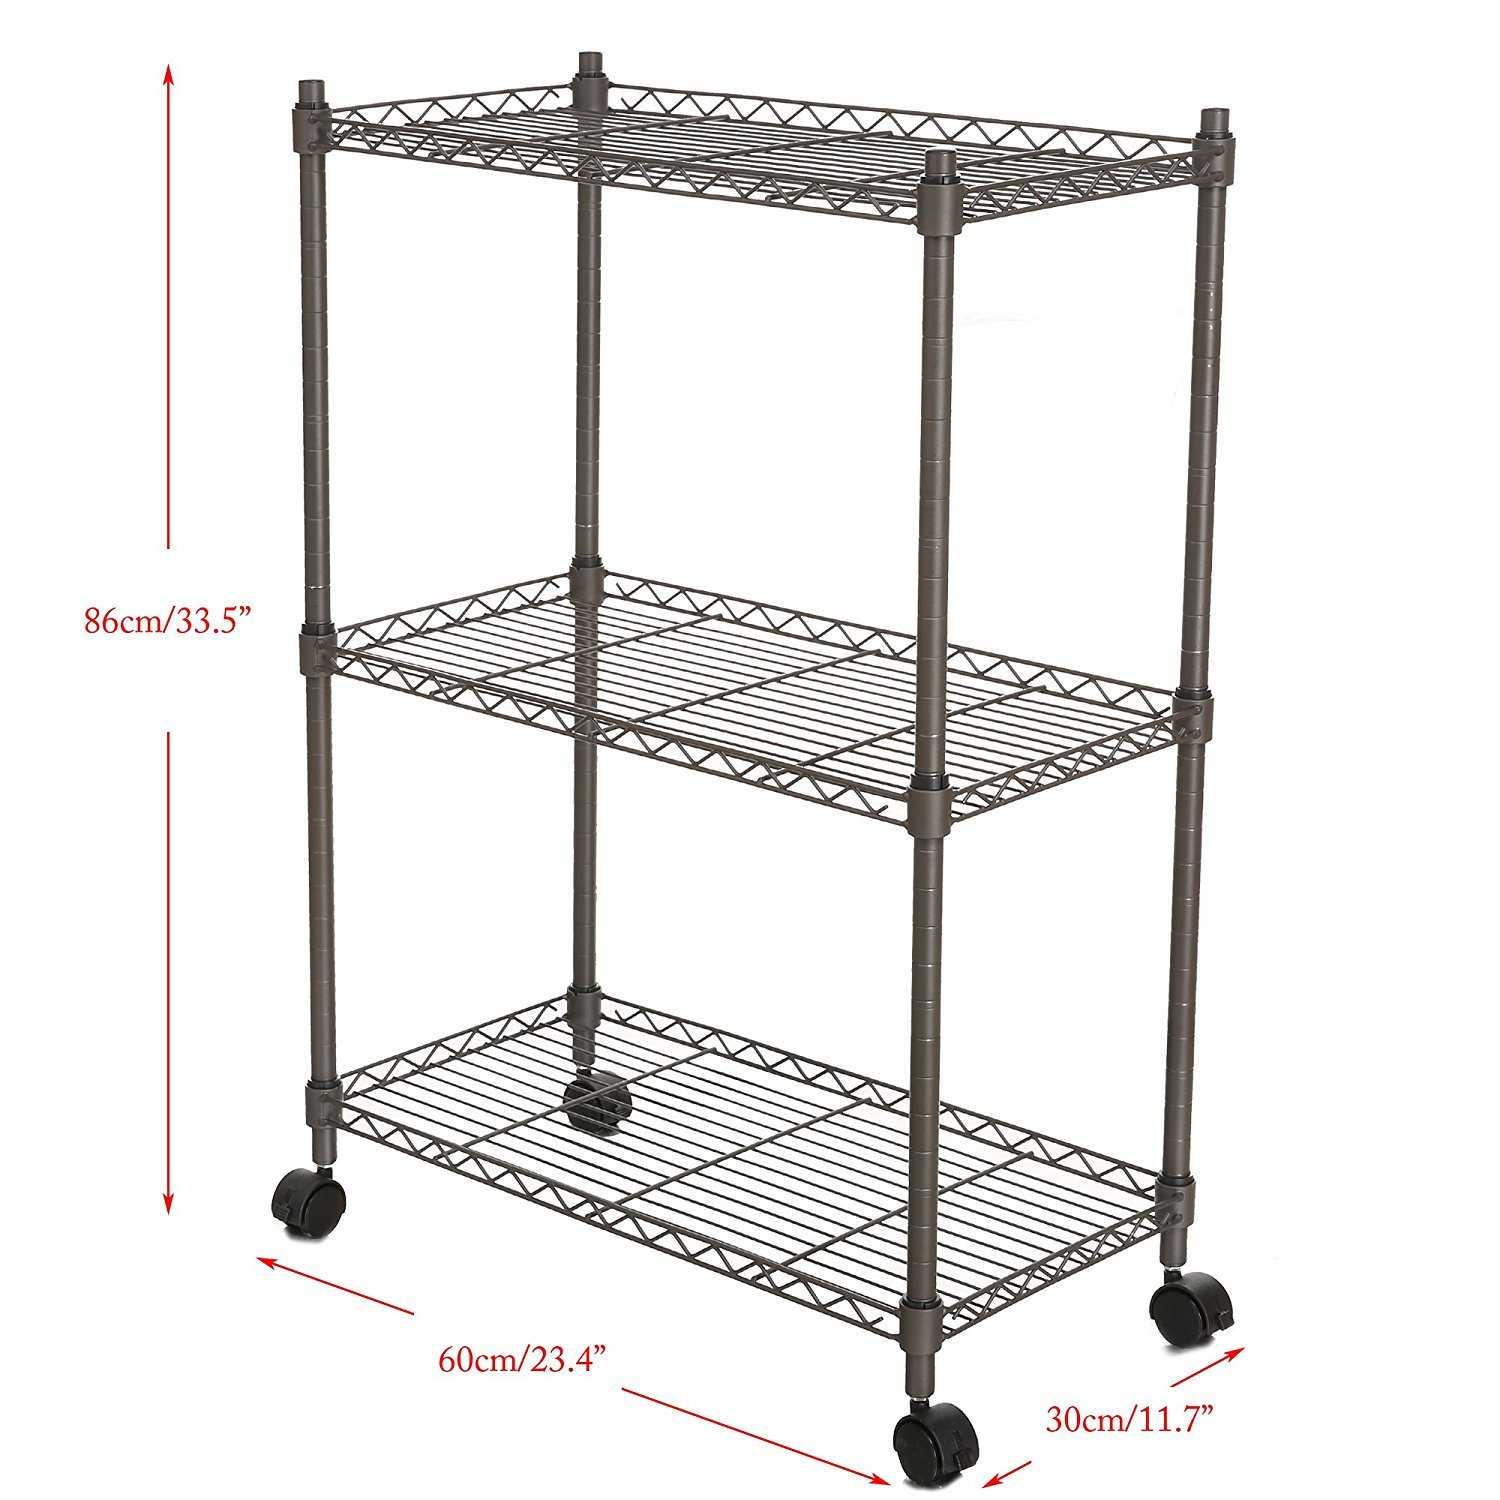 Leoneva 3-Tier Adjustable Rolling Chrome Cart Wire Shelving Rack with Locking Wheels, 11.7''(D) x 23.4''(W) x 33.5''(H), Gray